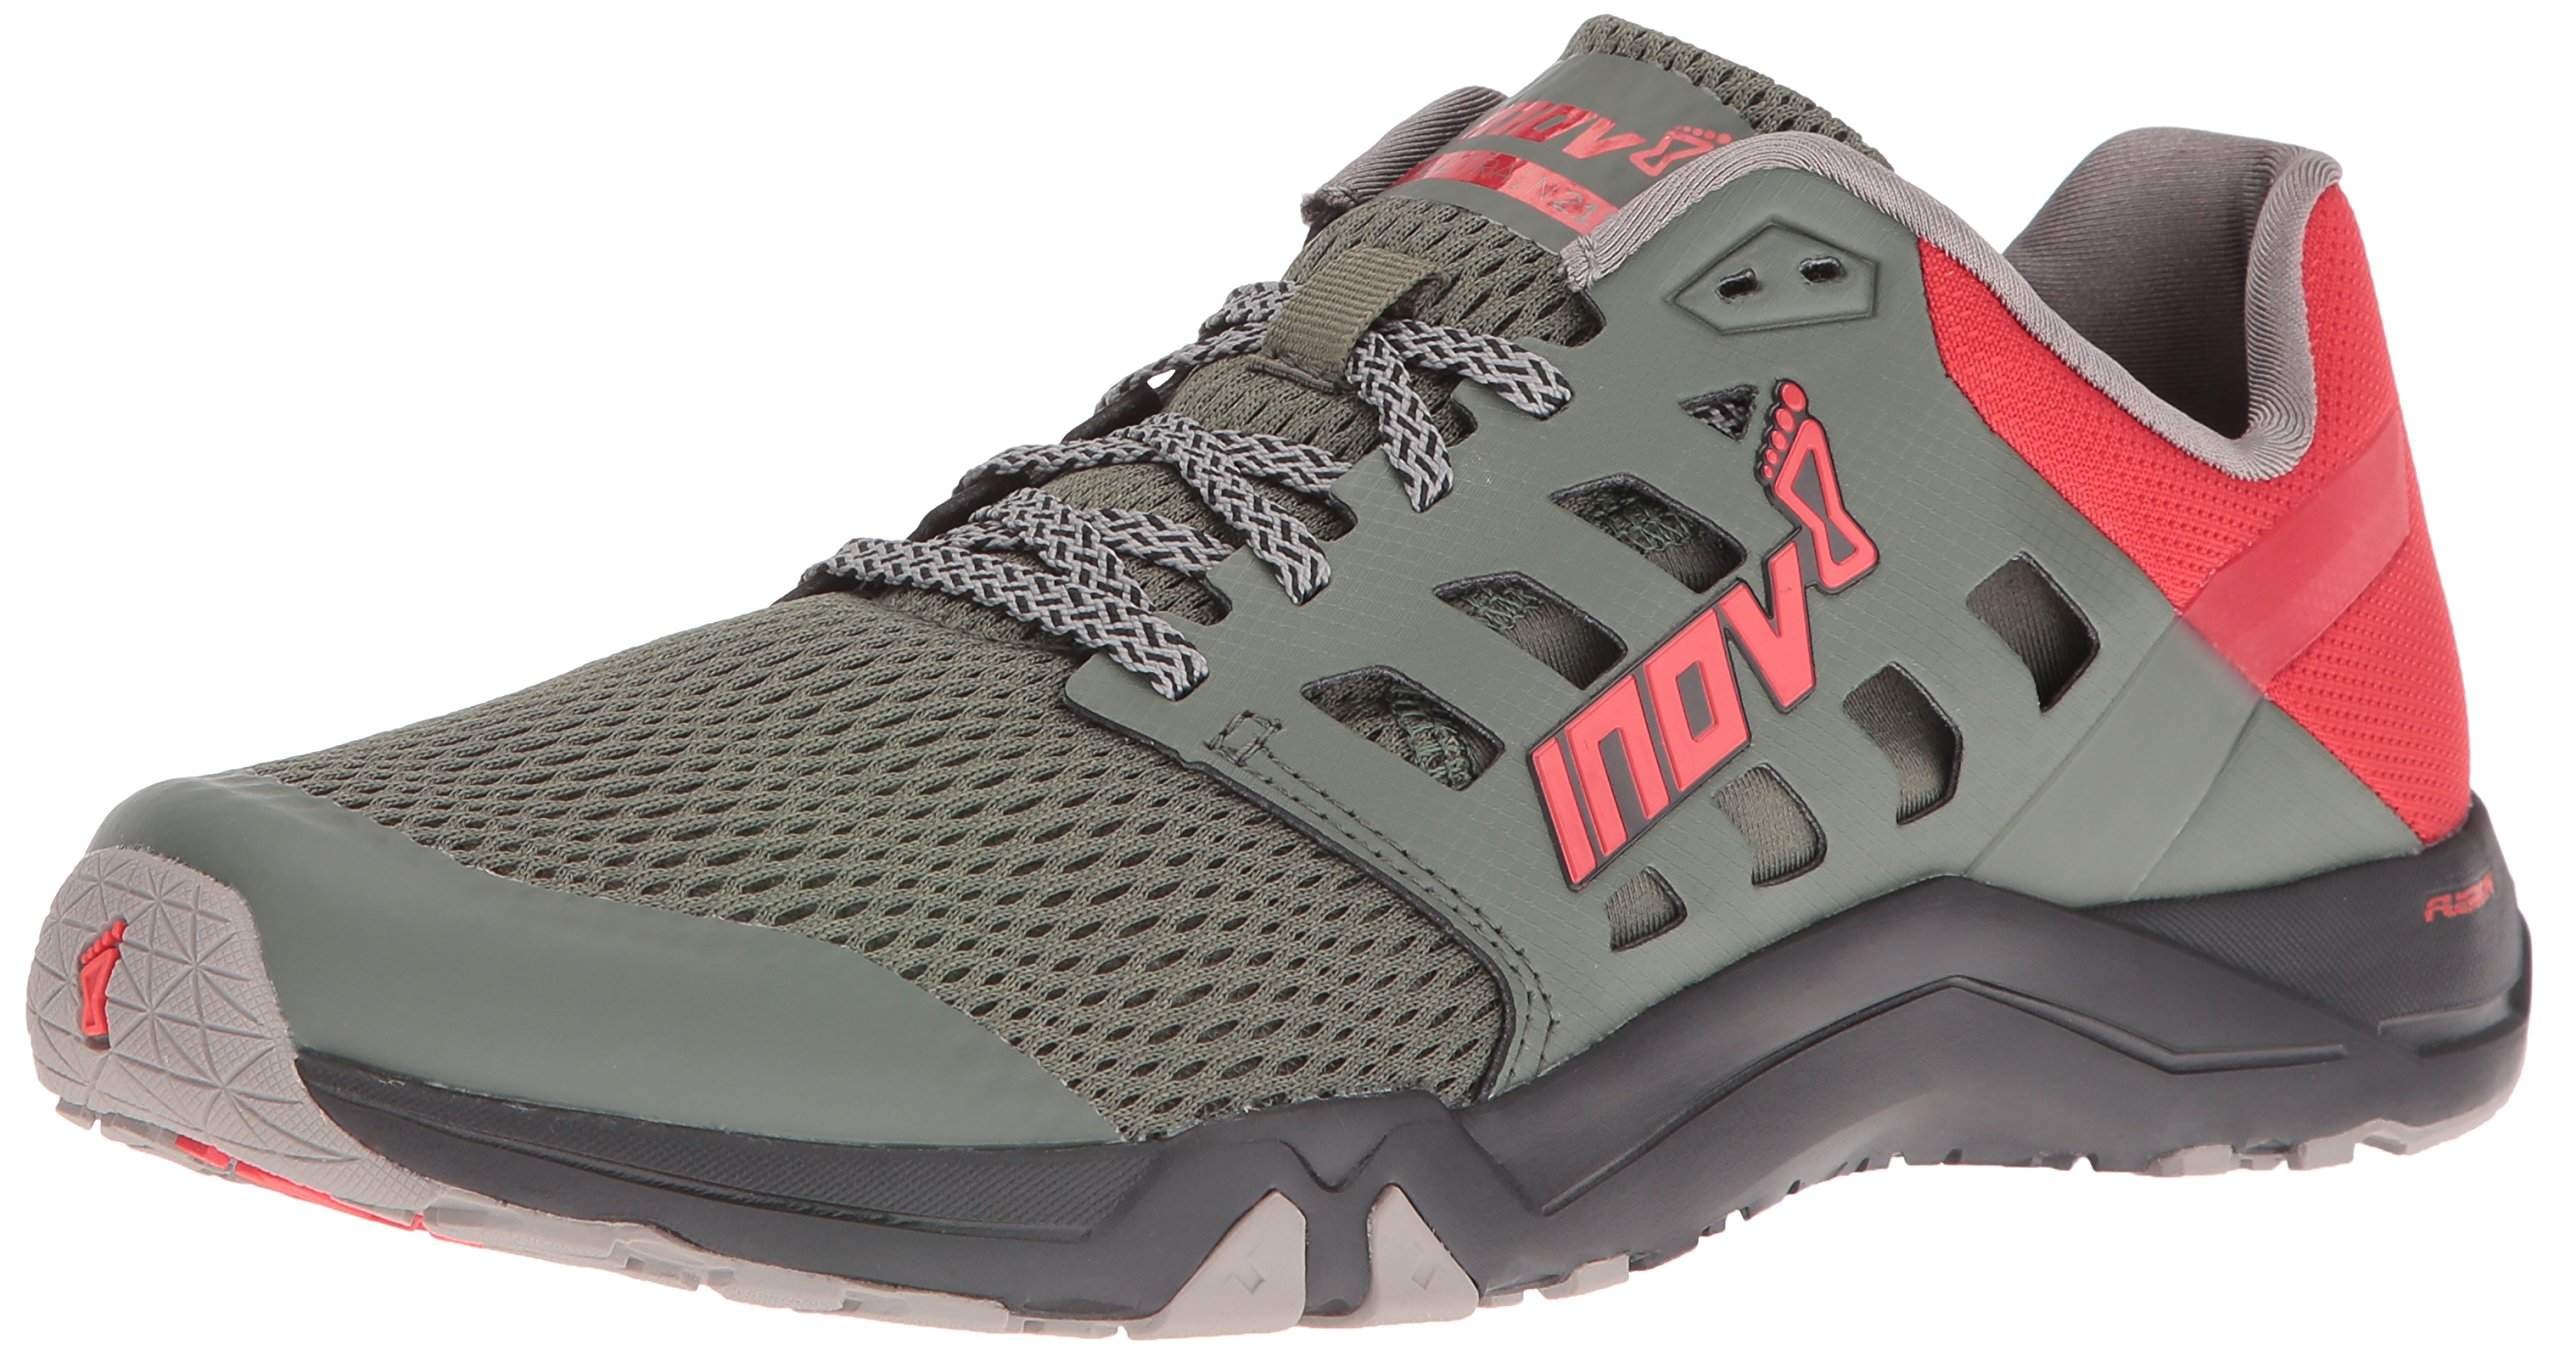 Inov-8 Men's All Train 215 Cross-Trainer Shoe, Dark Green/Red/Black, 12 D US